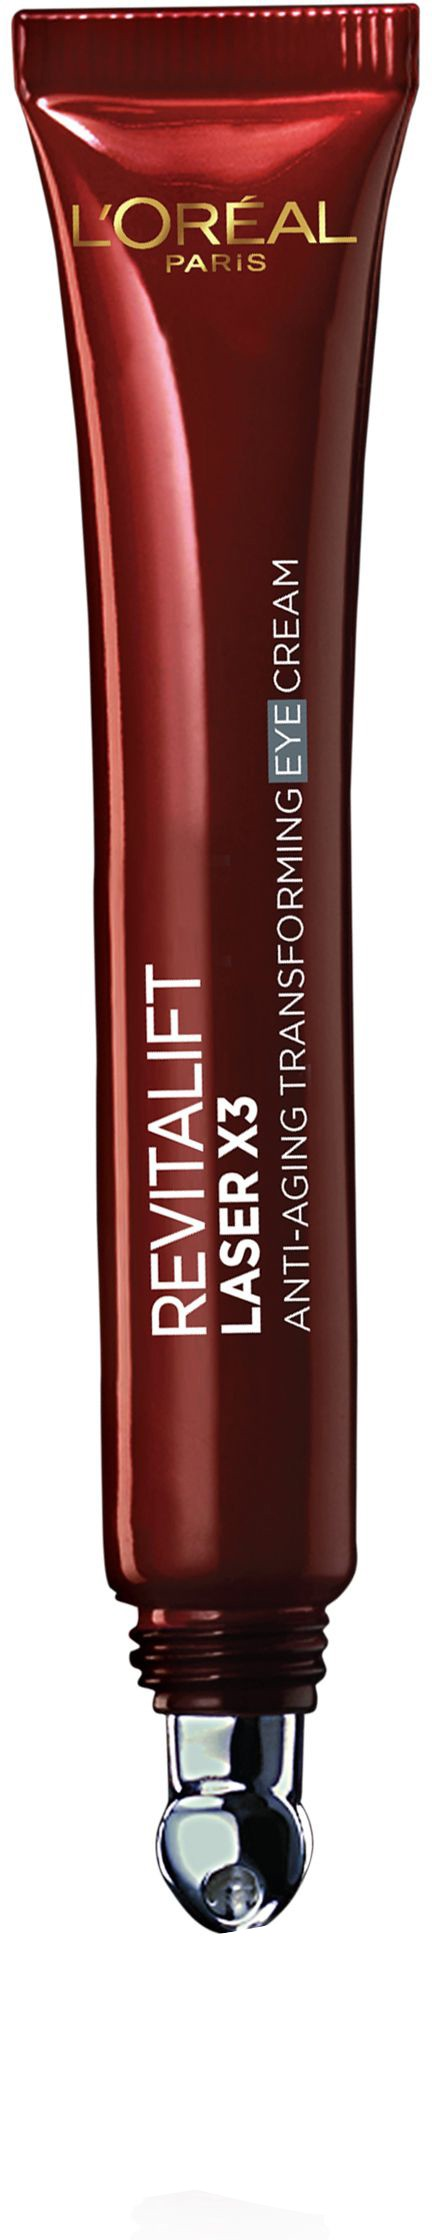 LOreal Paris Revitalift Laser X3 Eye Cream(15 ml)